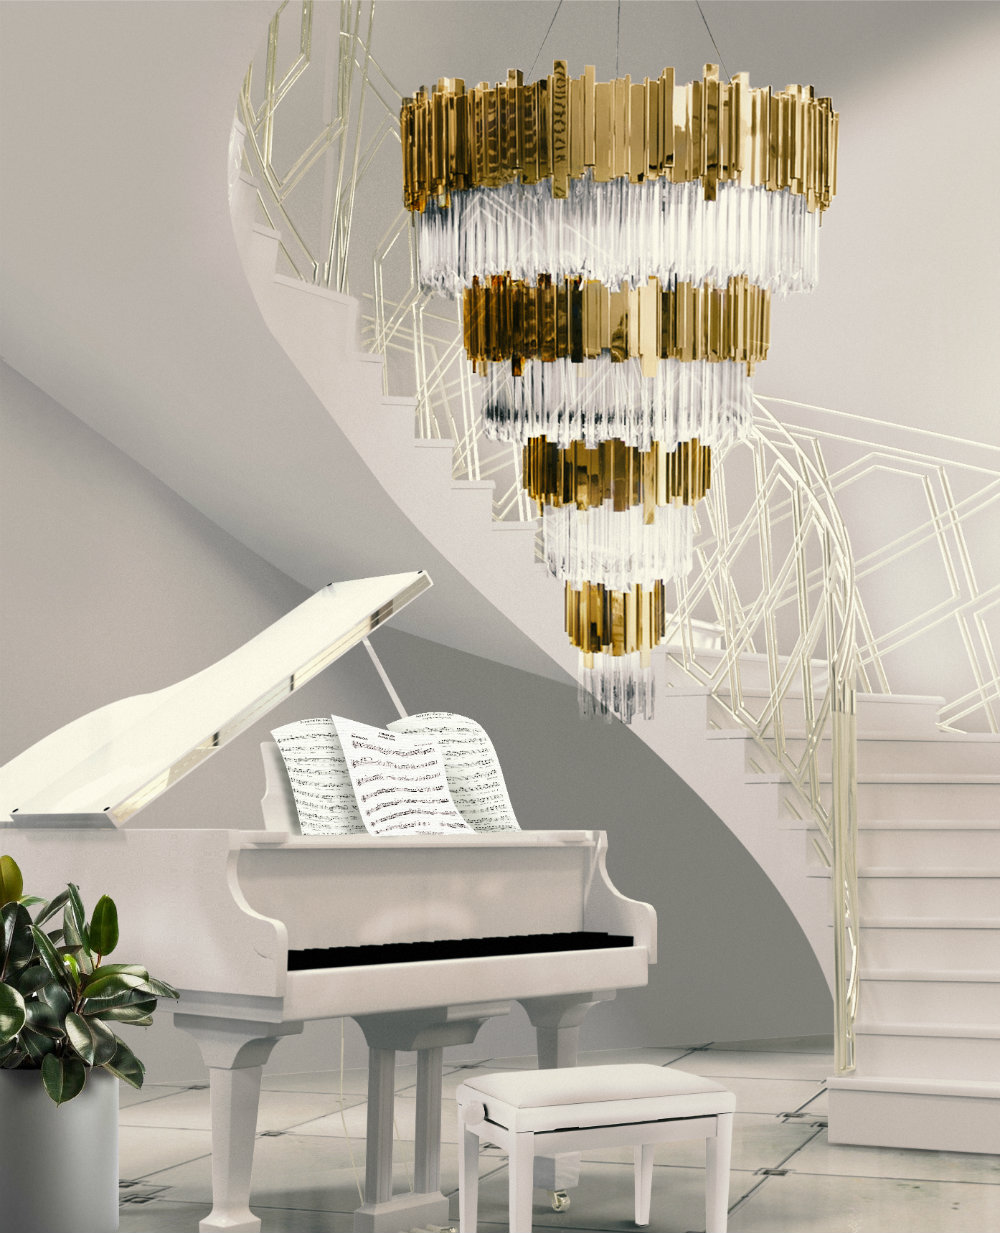 6 Luxurious Stairwell Designs You'll Love 06 Stairwell Designs 6 Luxurious Stairwell Designs You'll Love 6 Luxurious Stairwell Designs Youll Love 06